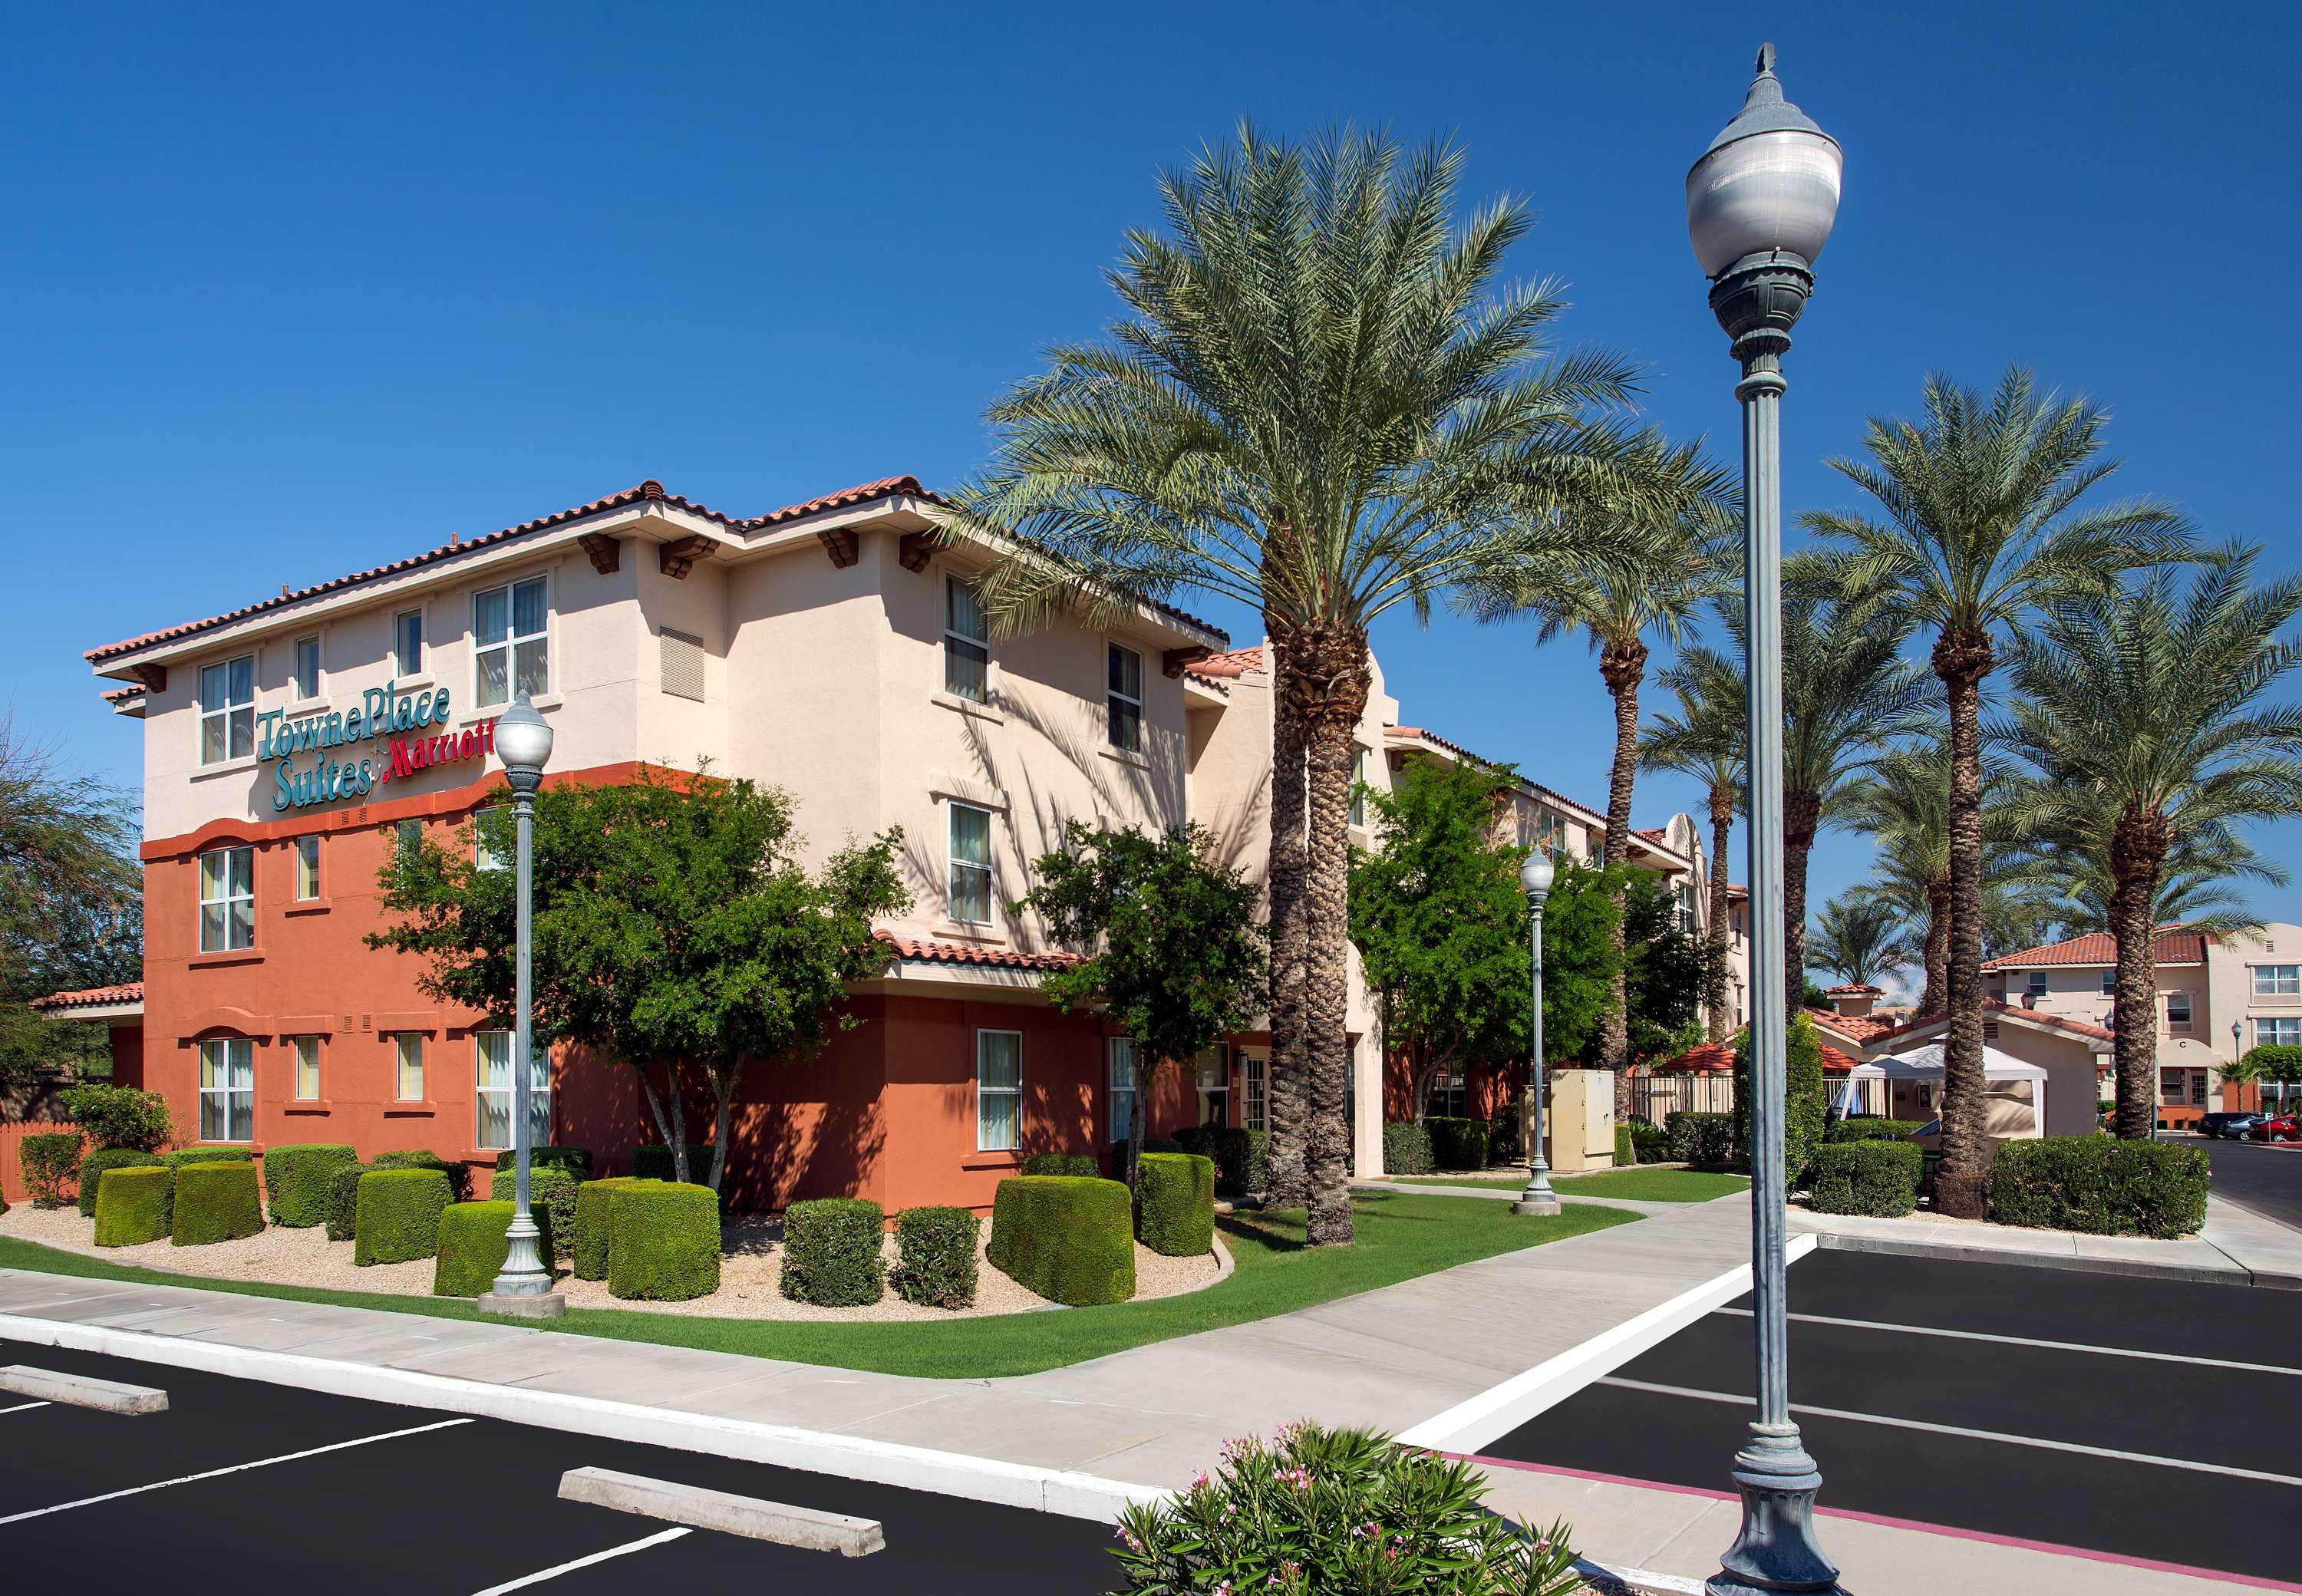 TownePlace Suites by Marriott Scottsdale image 7